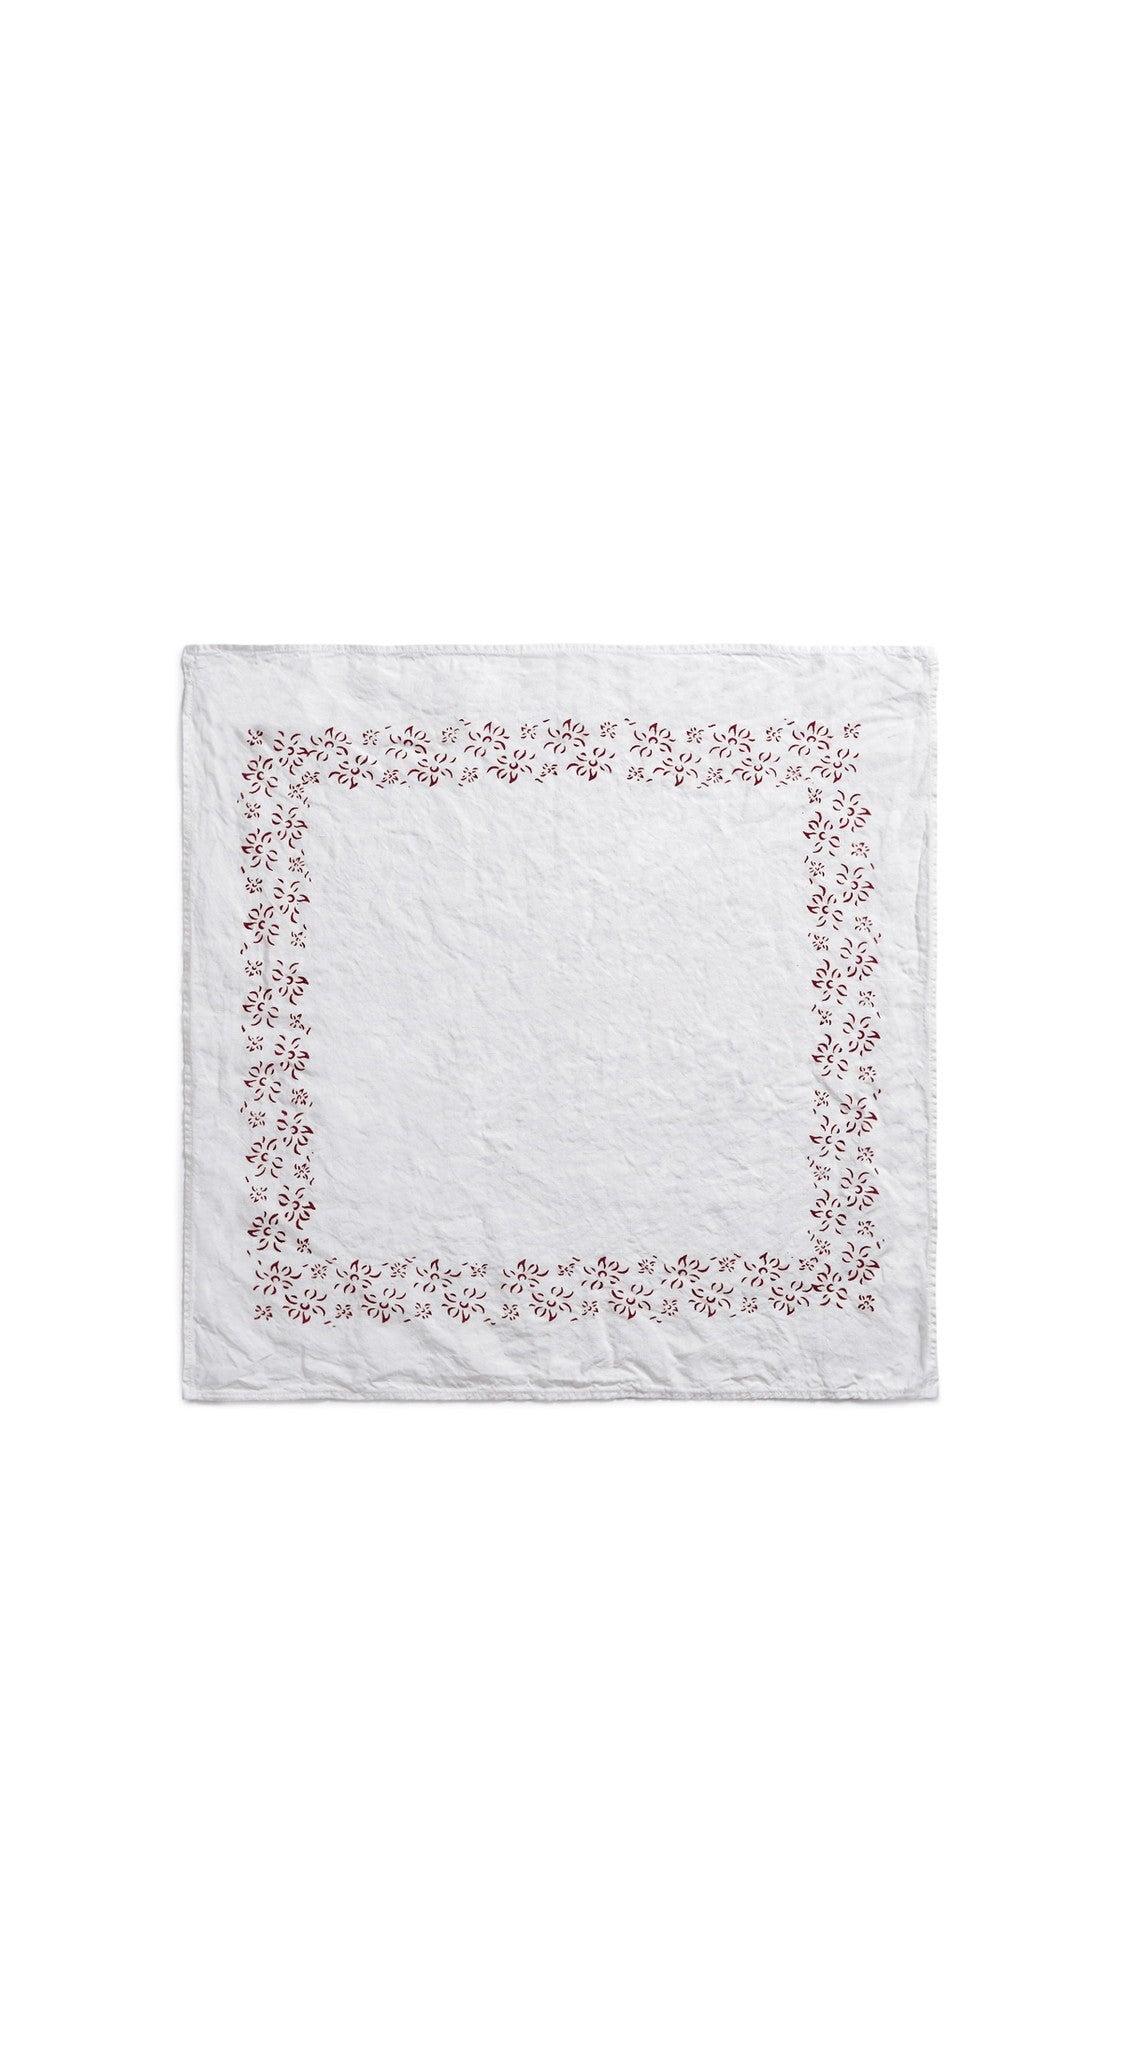 Bernadette's Framed Flower Linen Napkin in Claret Red